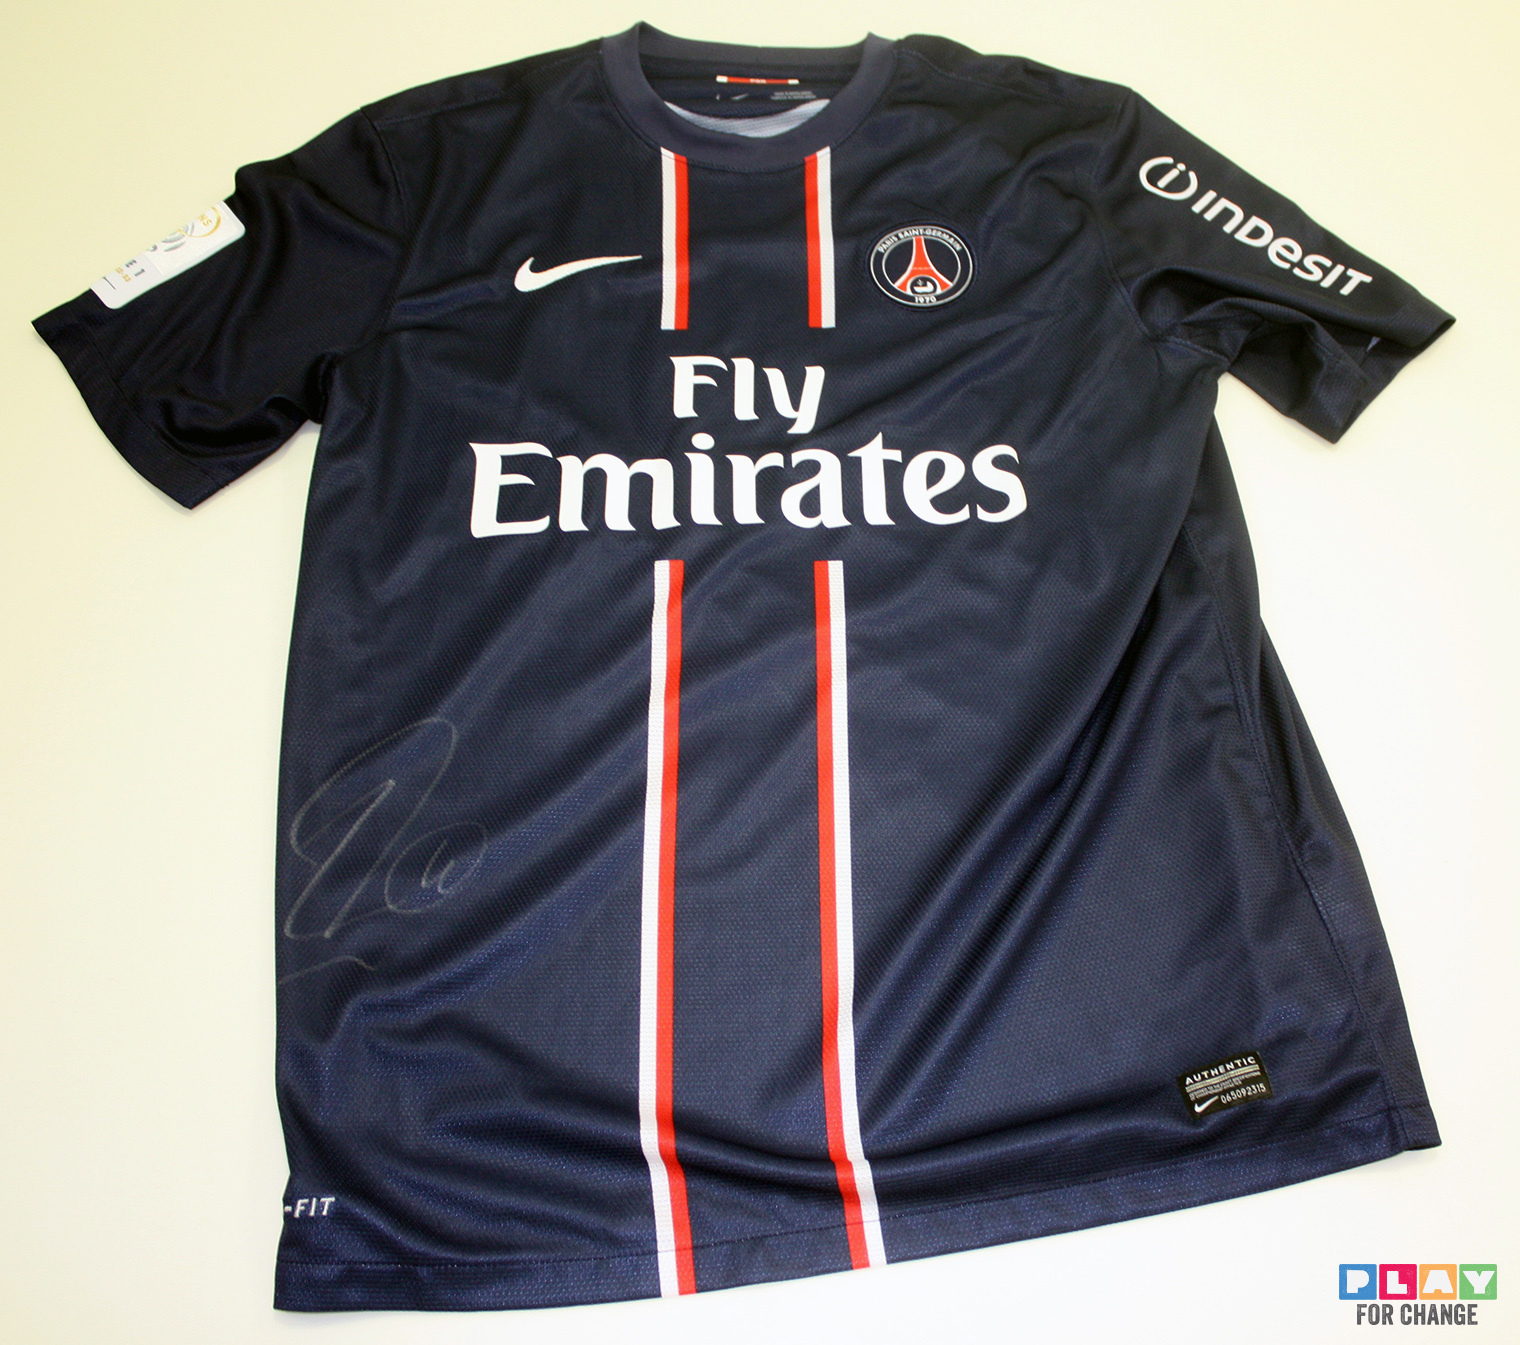 Signed Autograph Moura Lucas Psg: Charitybuzz: Paris Saint-Germain Match Jersey Signed By